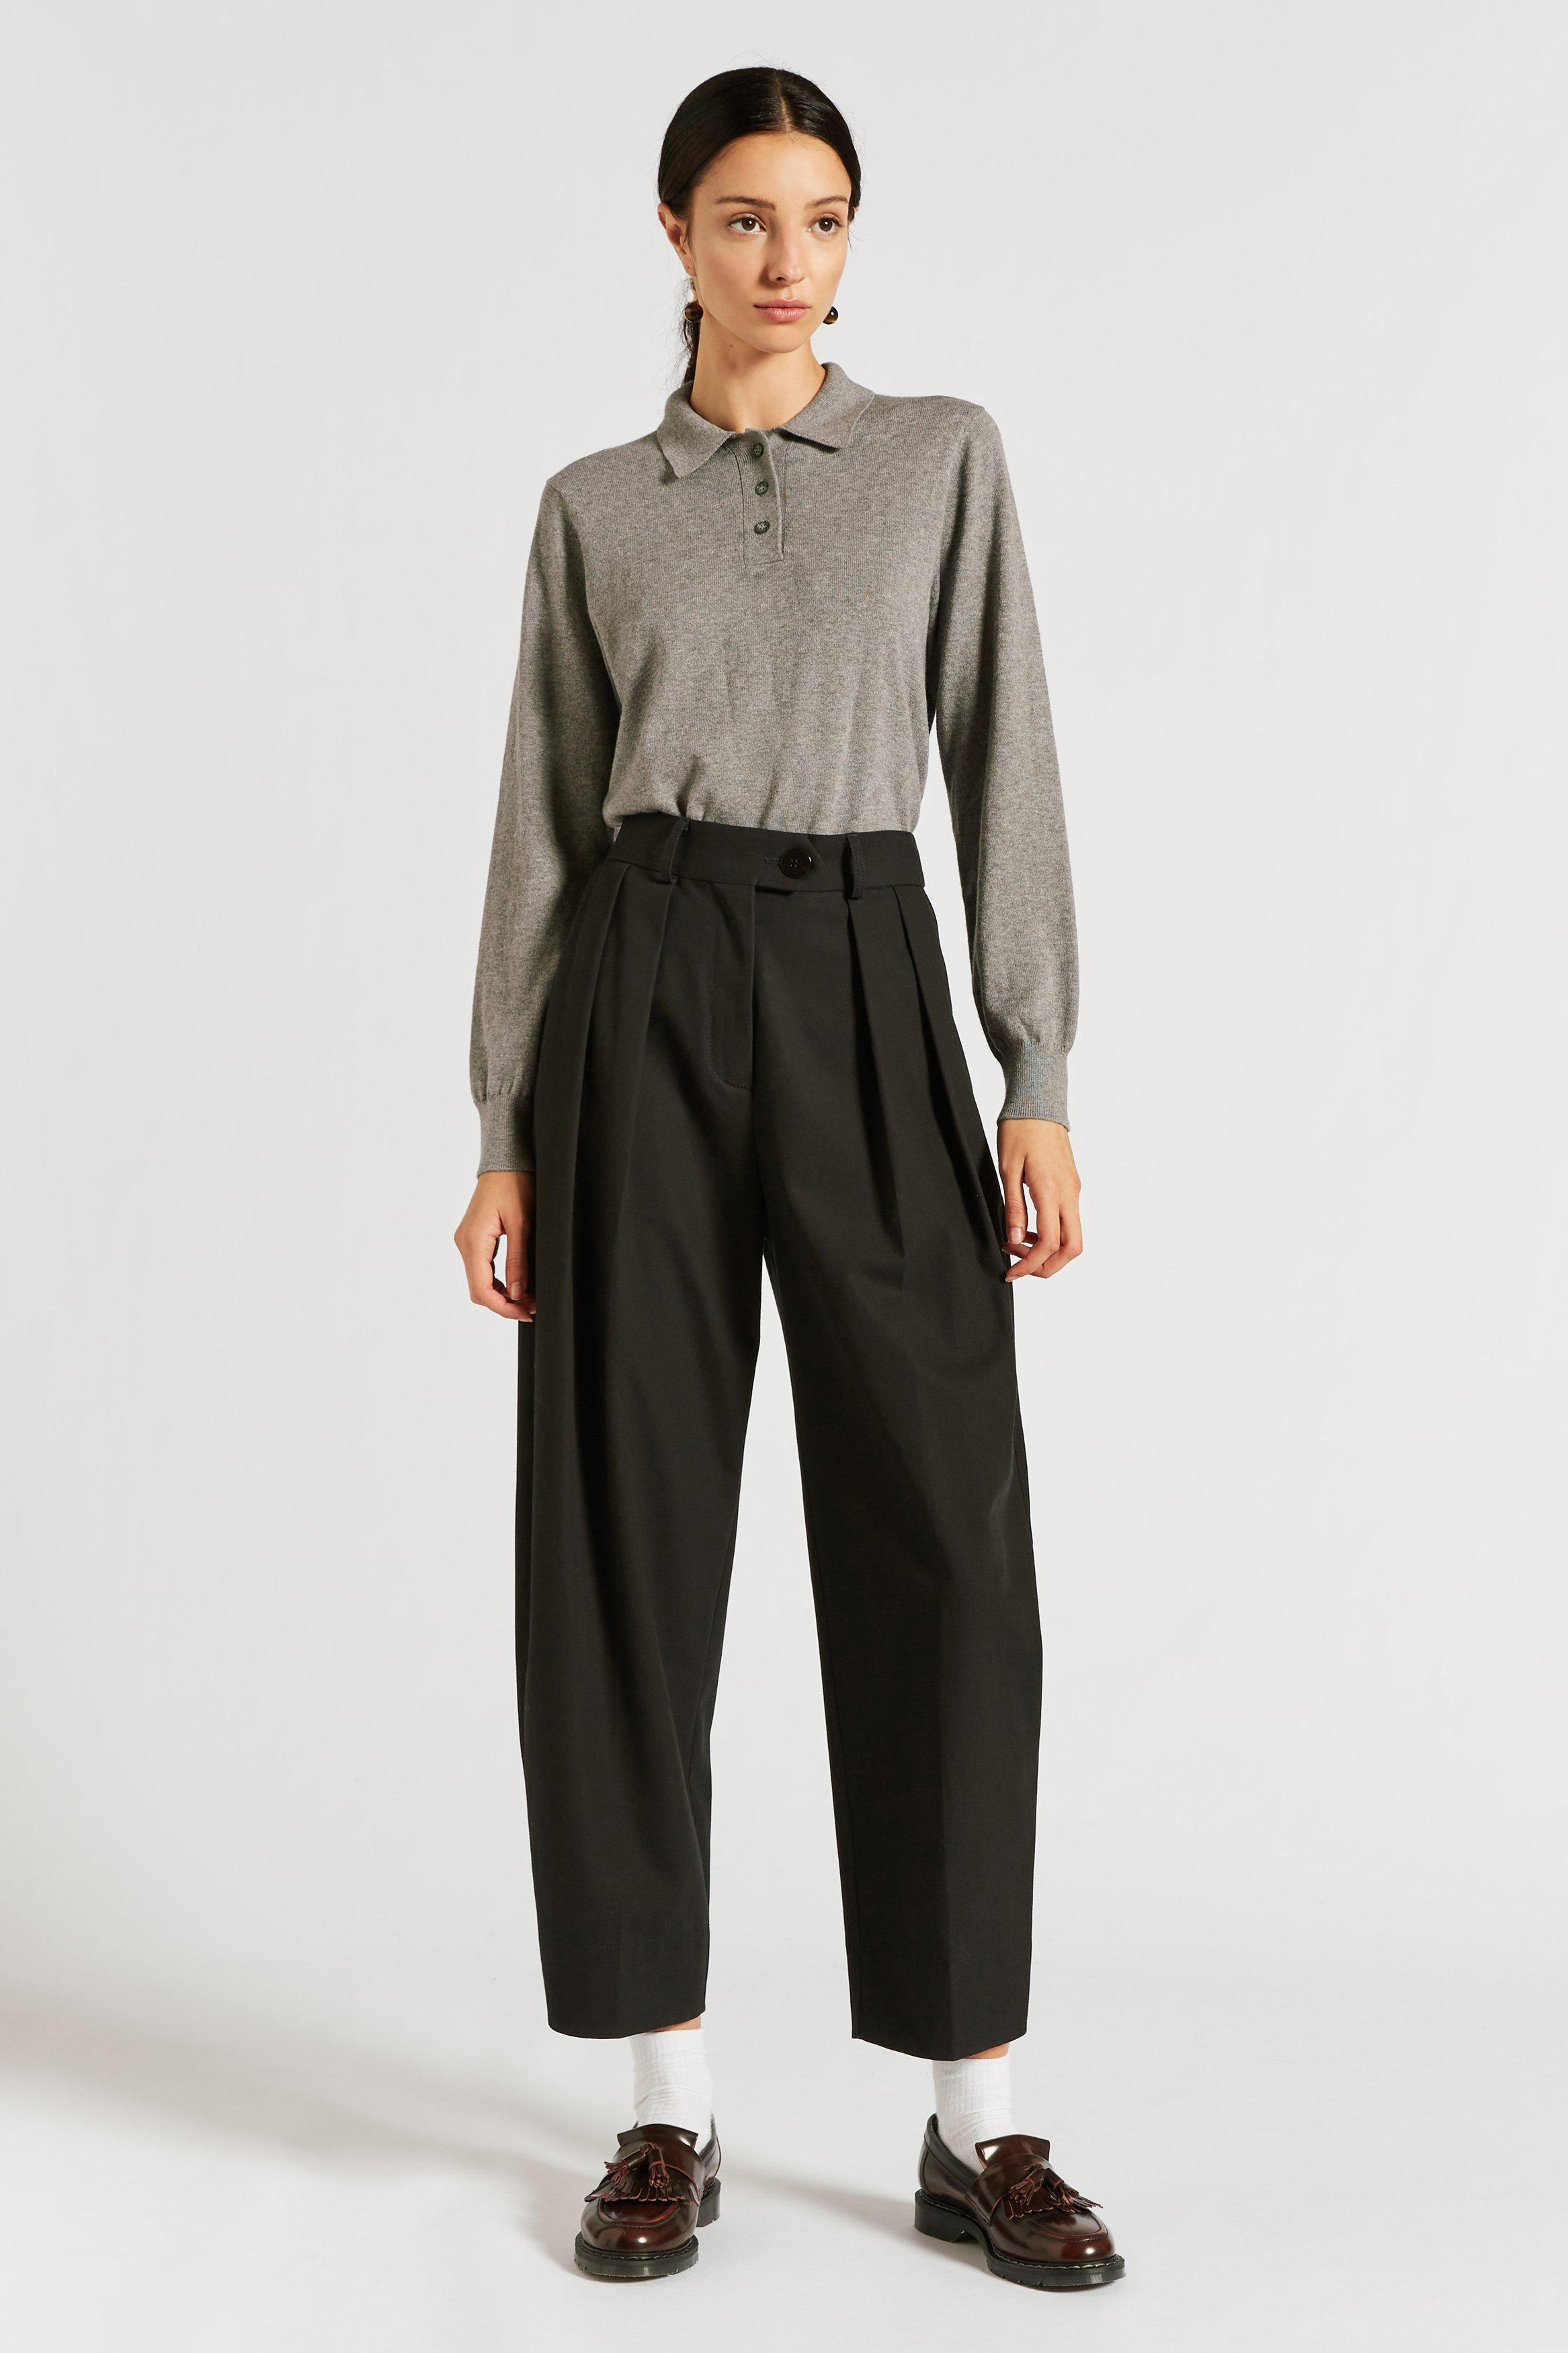 Spencer Pleat Front Cocoon Pant